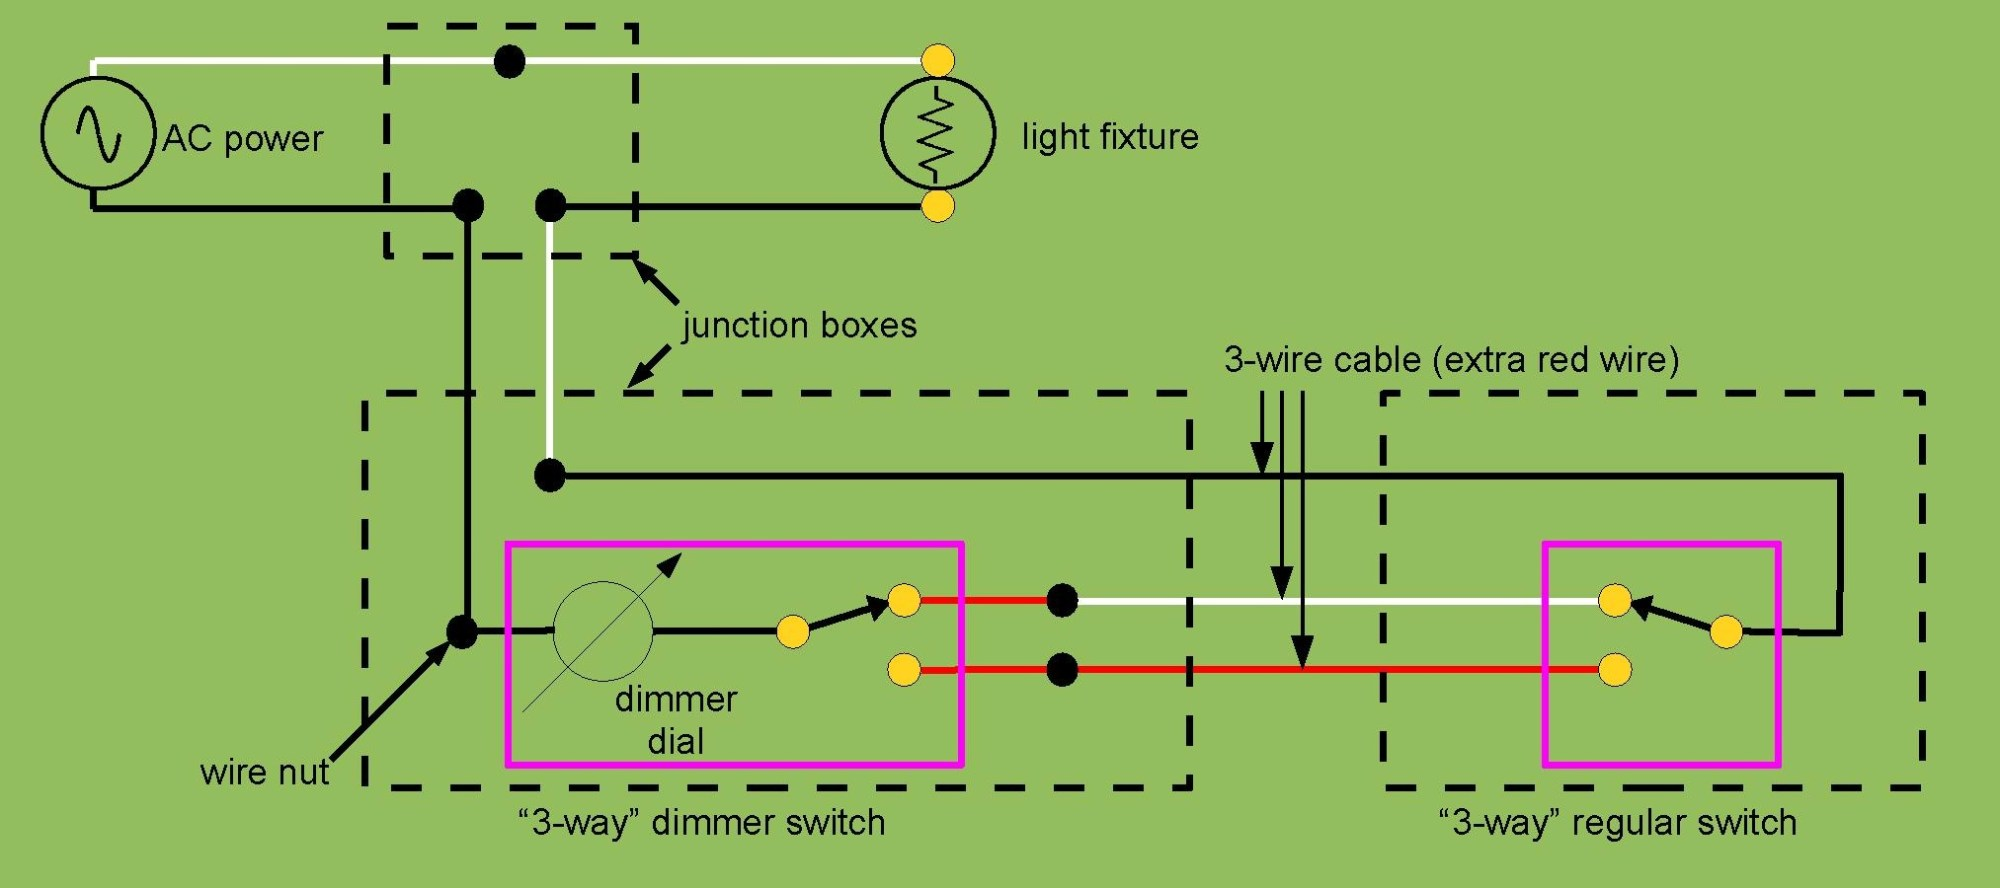 hight resolution of file 3 way dimmer switch wiring pdf wikimedia commons mix file 3 way dimmer switch wiring